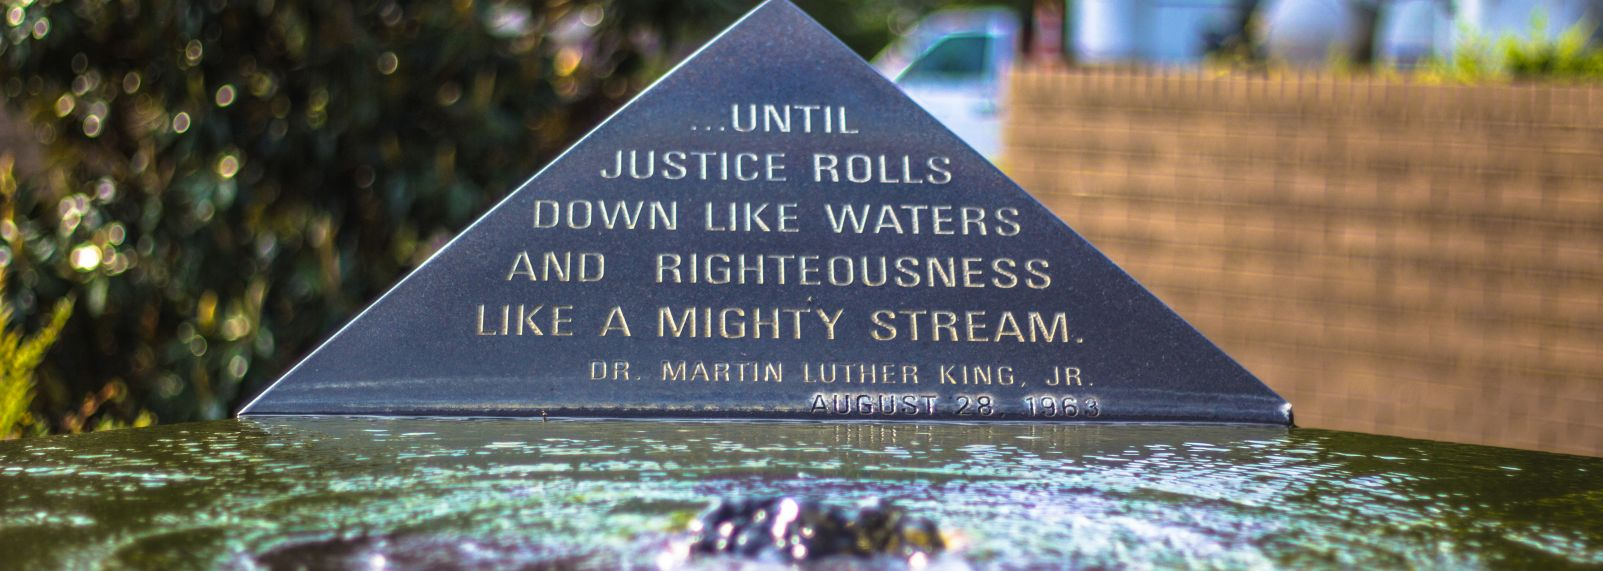 Martin Luther King Memorial Garden 01-101.jpg